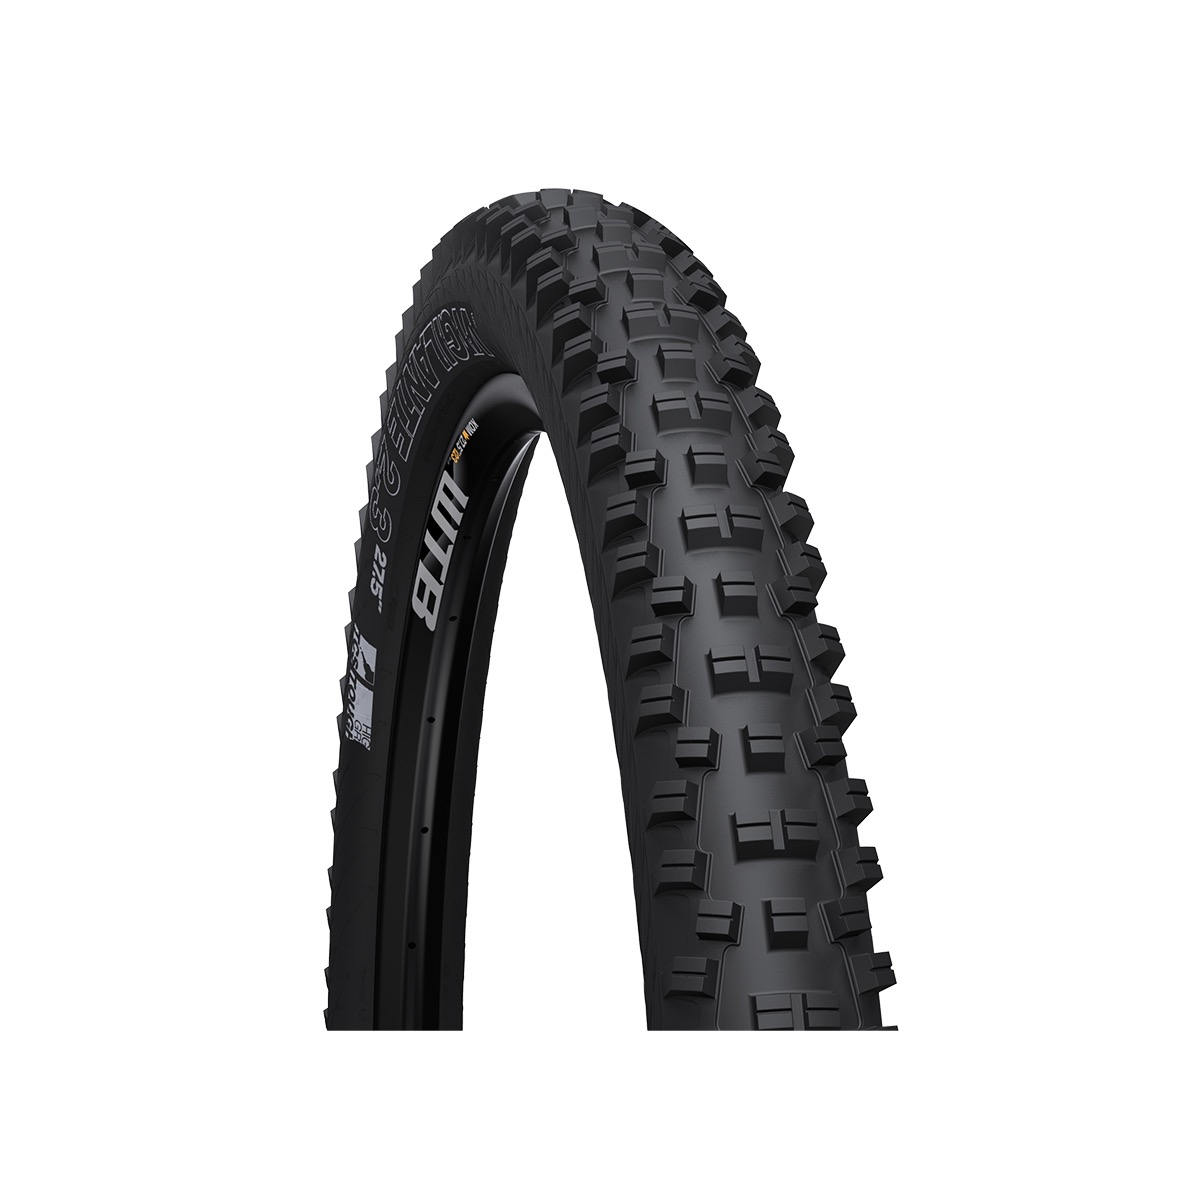 WTB Vigilante Tough/High Grip Tire 2.3 x 27.5""